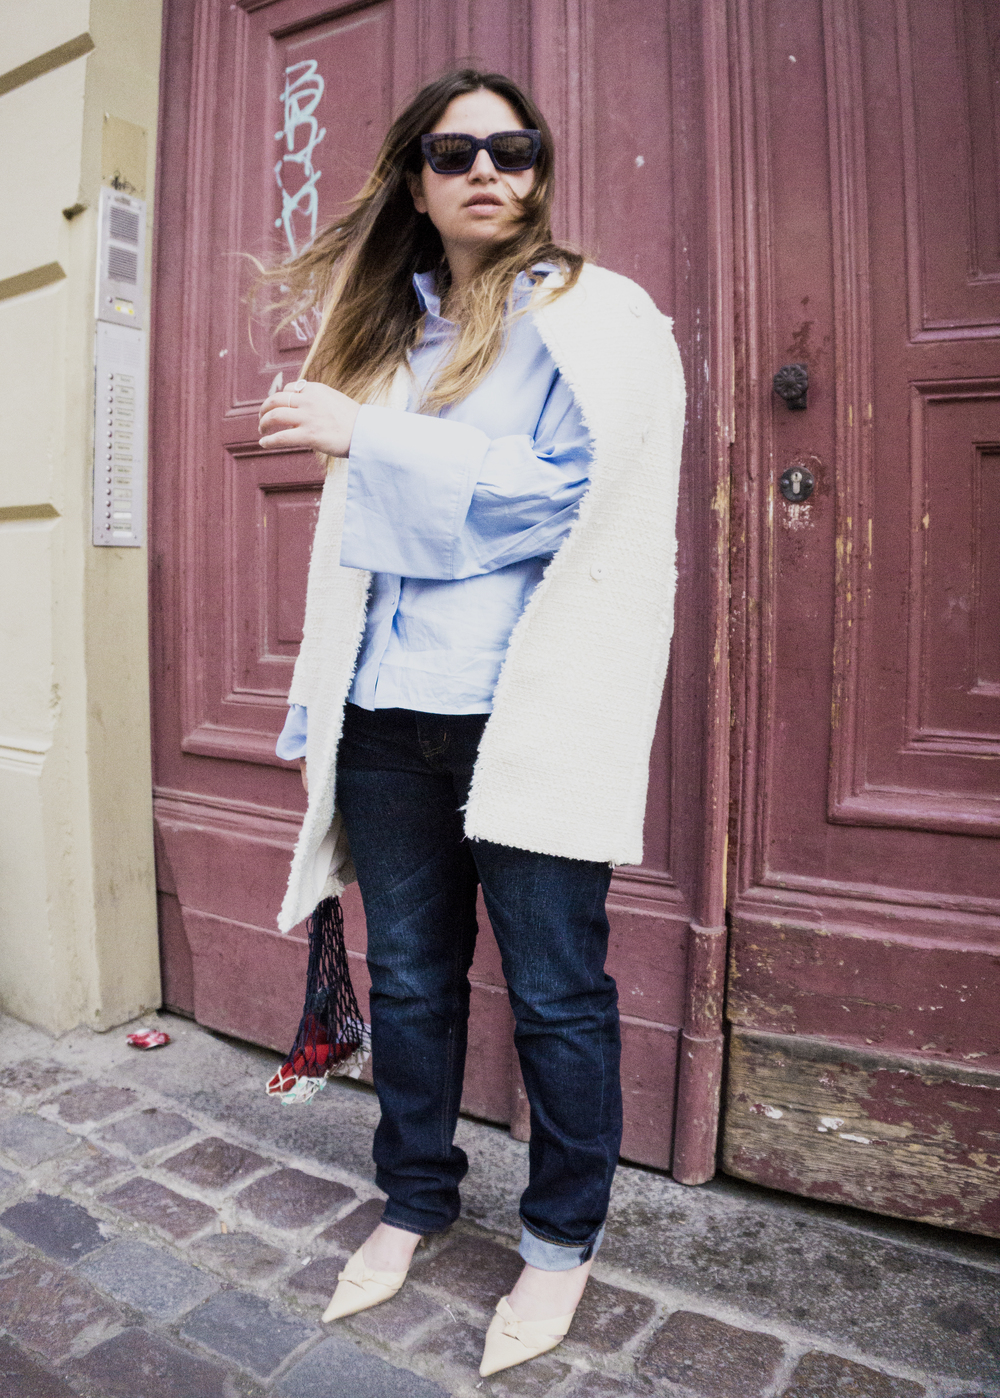 Coat from Gina Tricot. Jeans from Dr. Denim. Shirt from H&M. Mules and net bag are vintage.